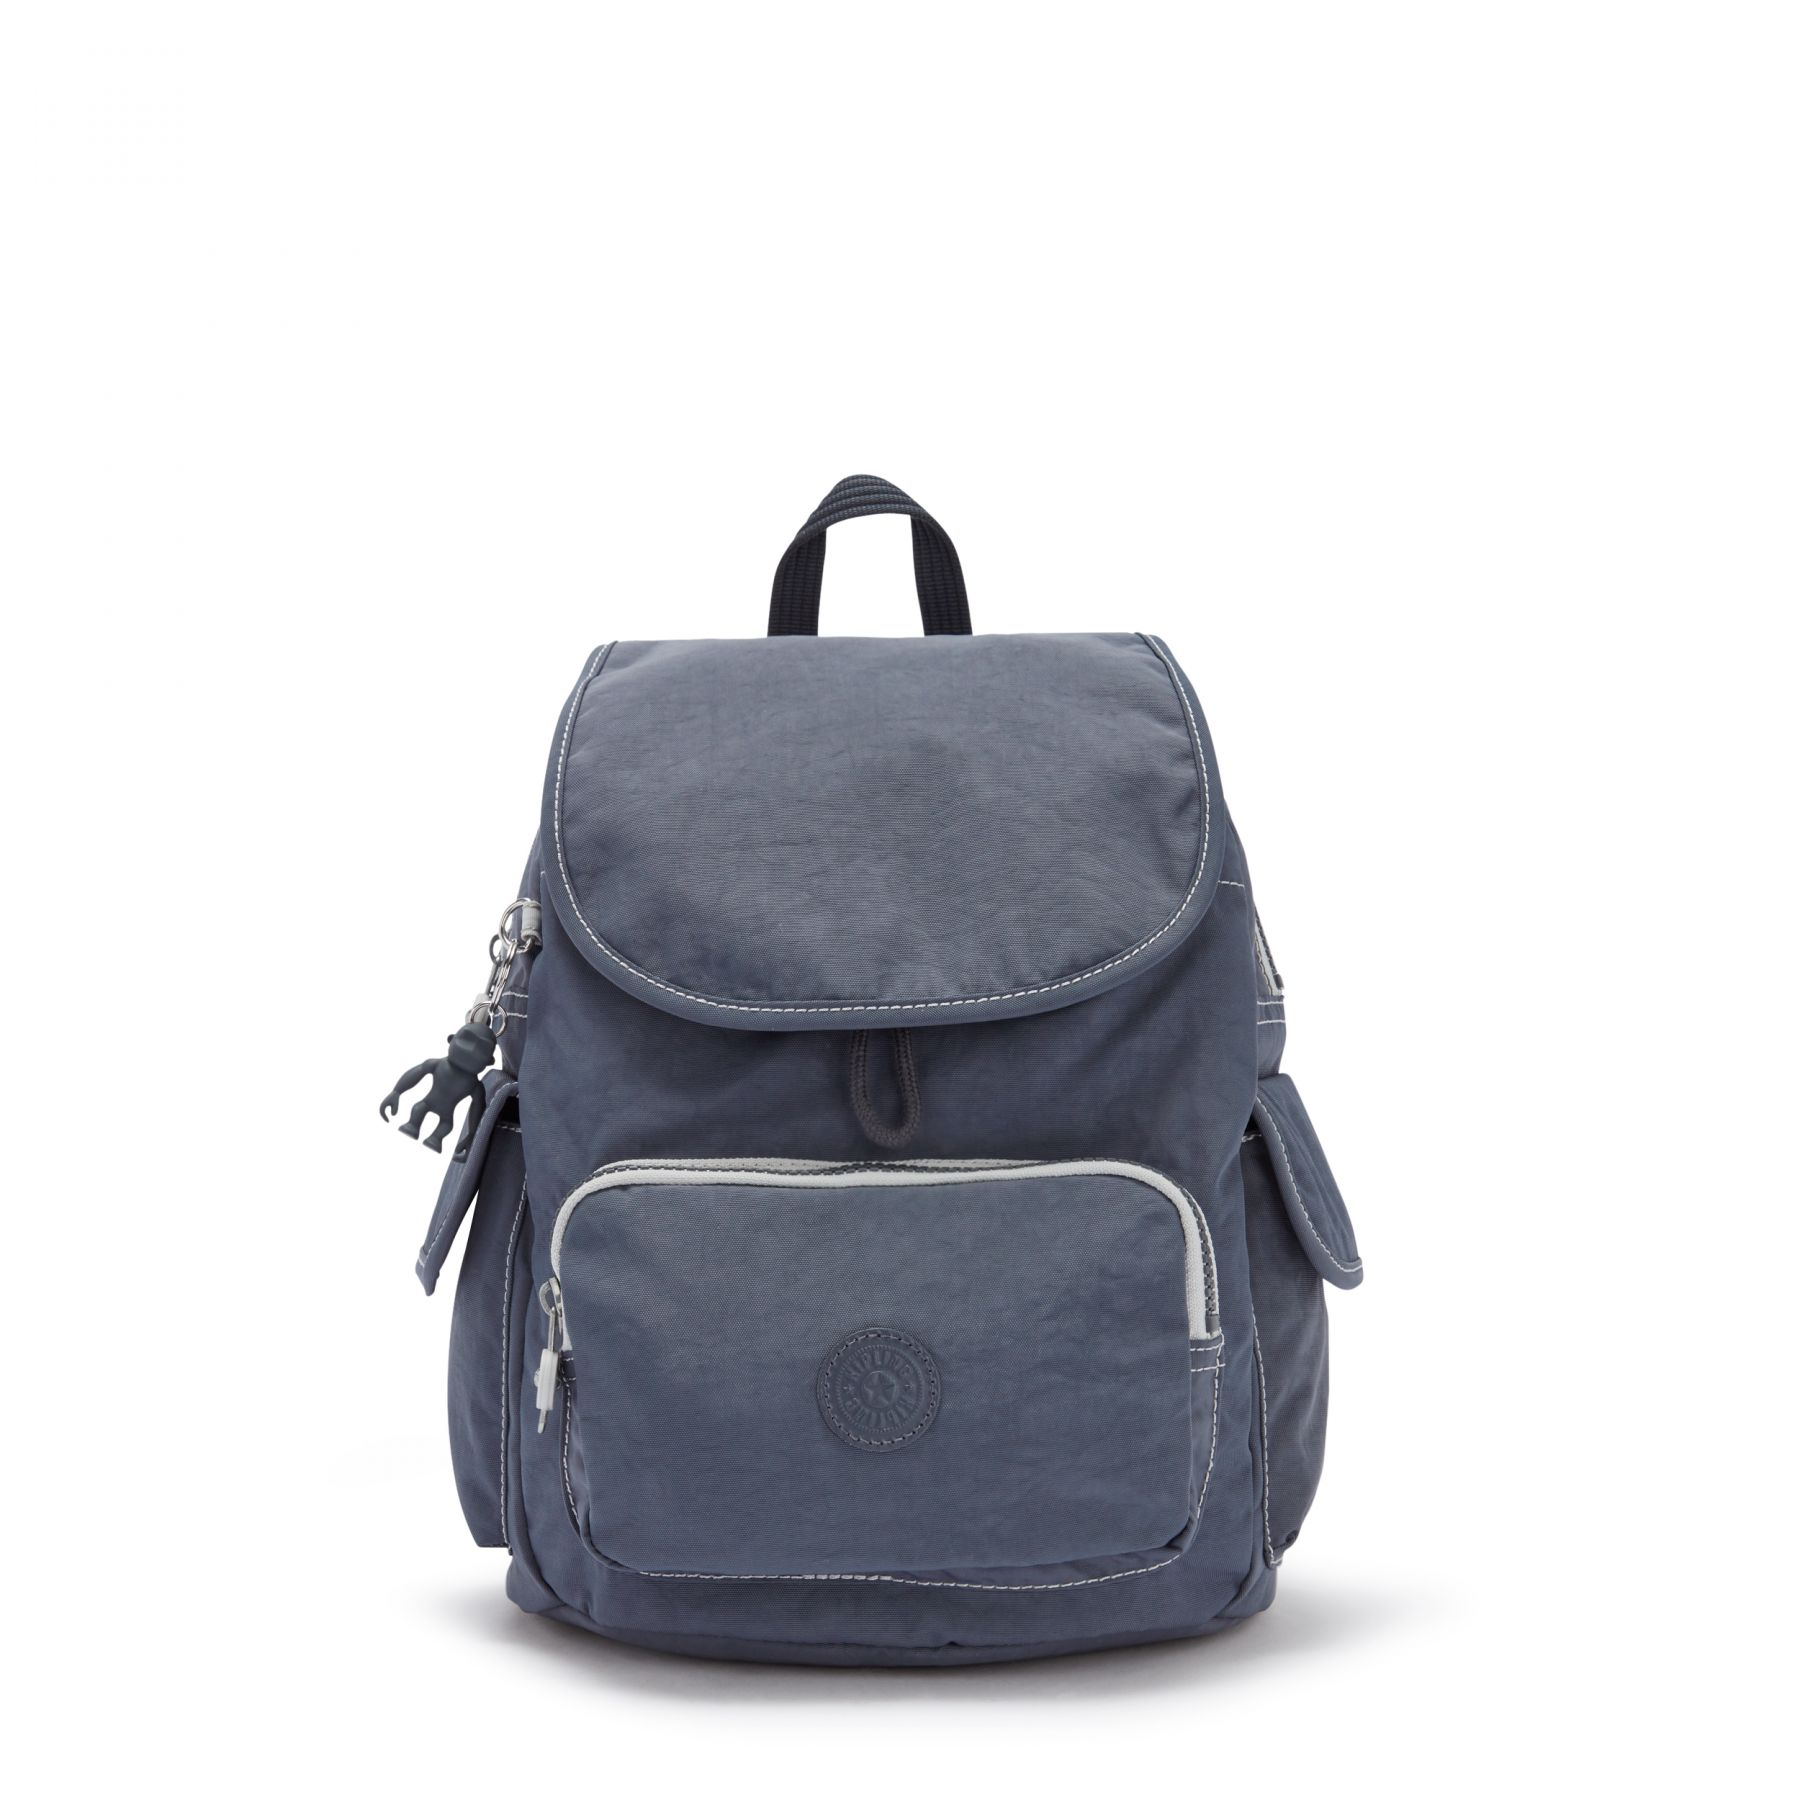 CITY PACK S BACKPACKS by Kipling